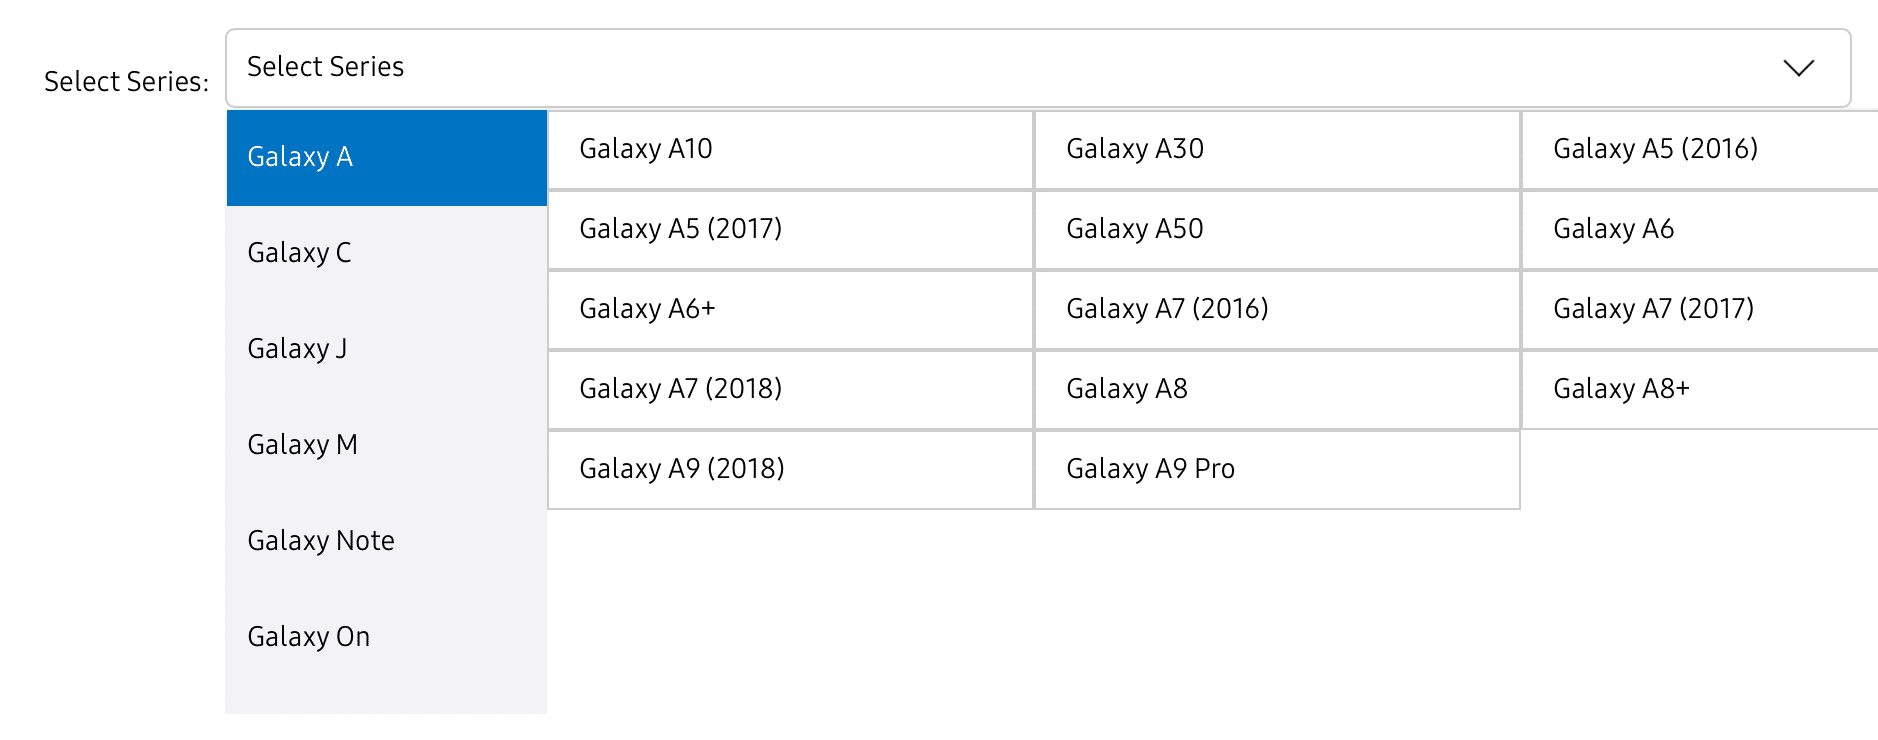 Samsung India Lists Key Spare Part Prices of Galaxy